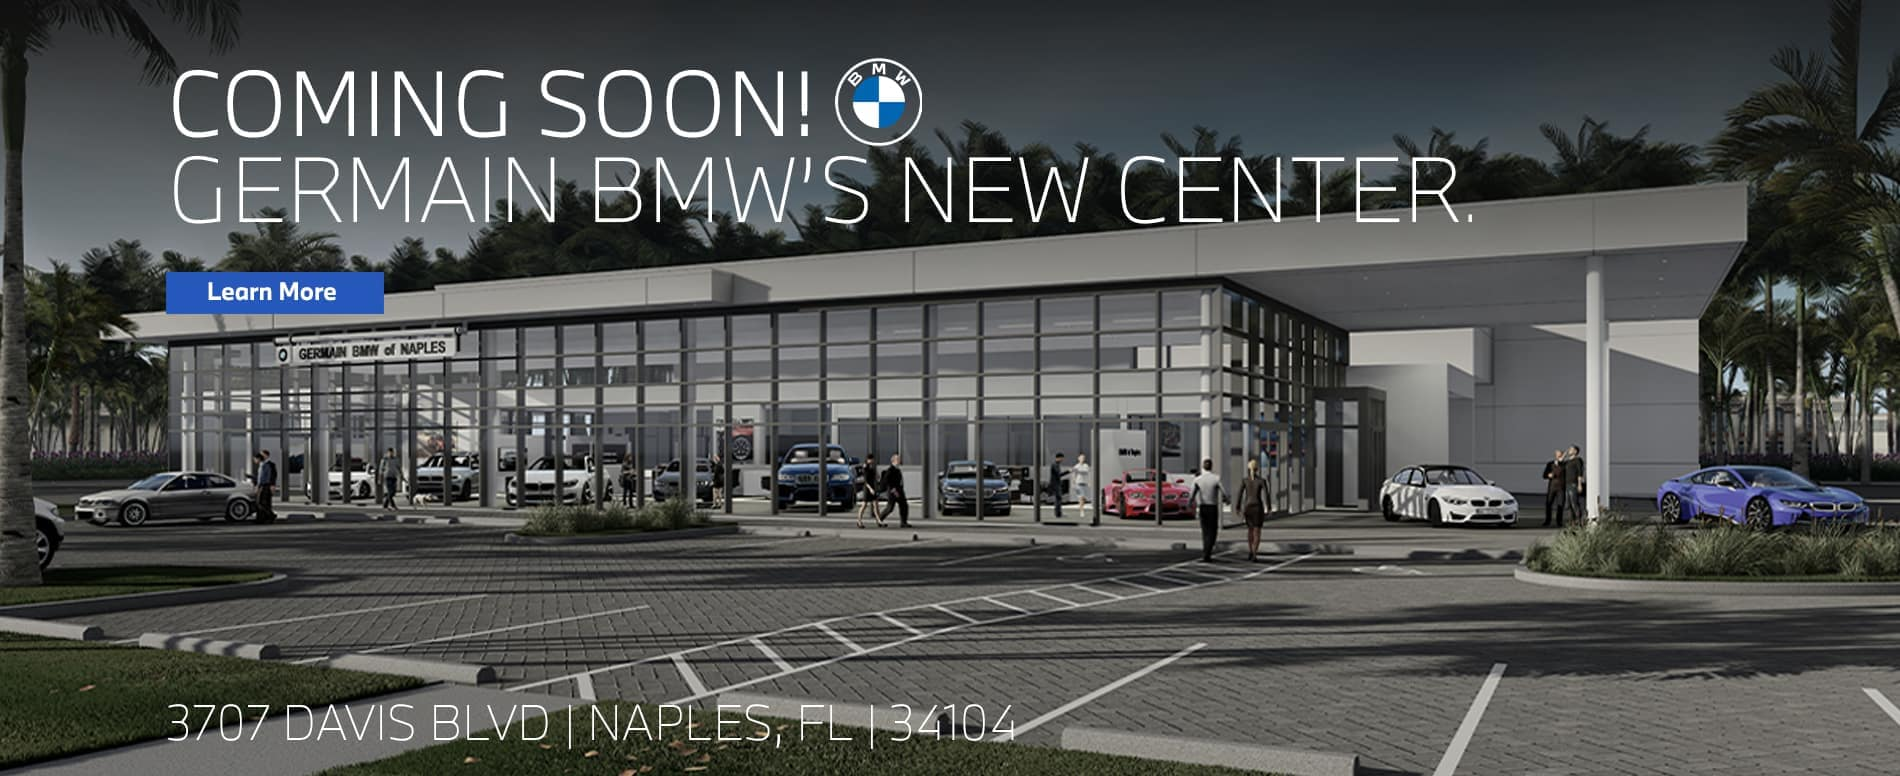 New Center Coming Soon in Florida